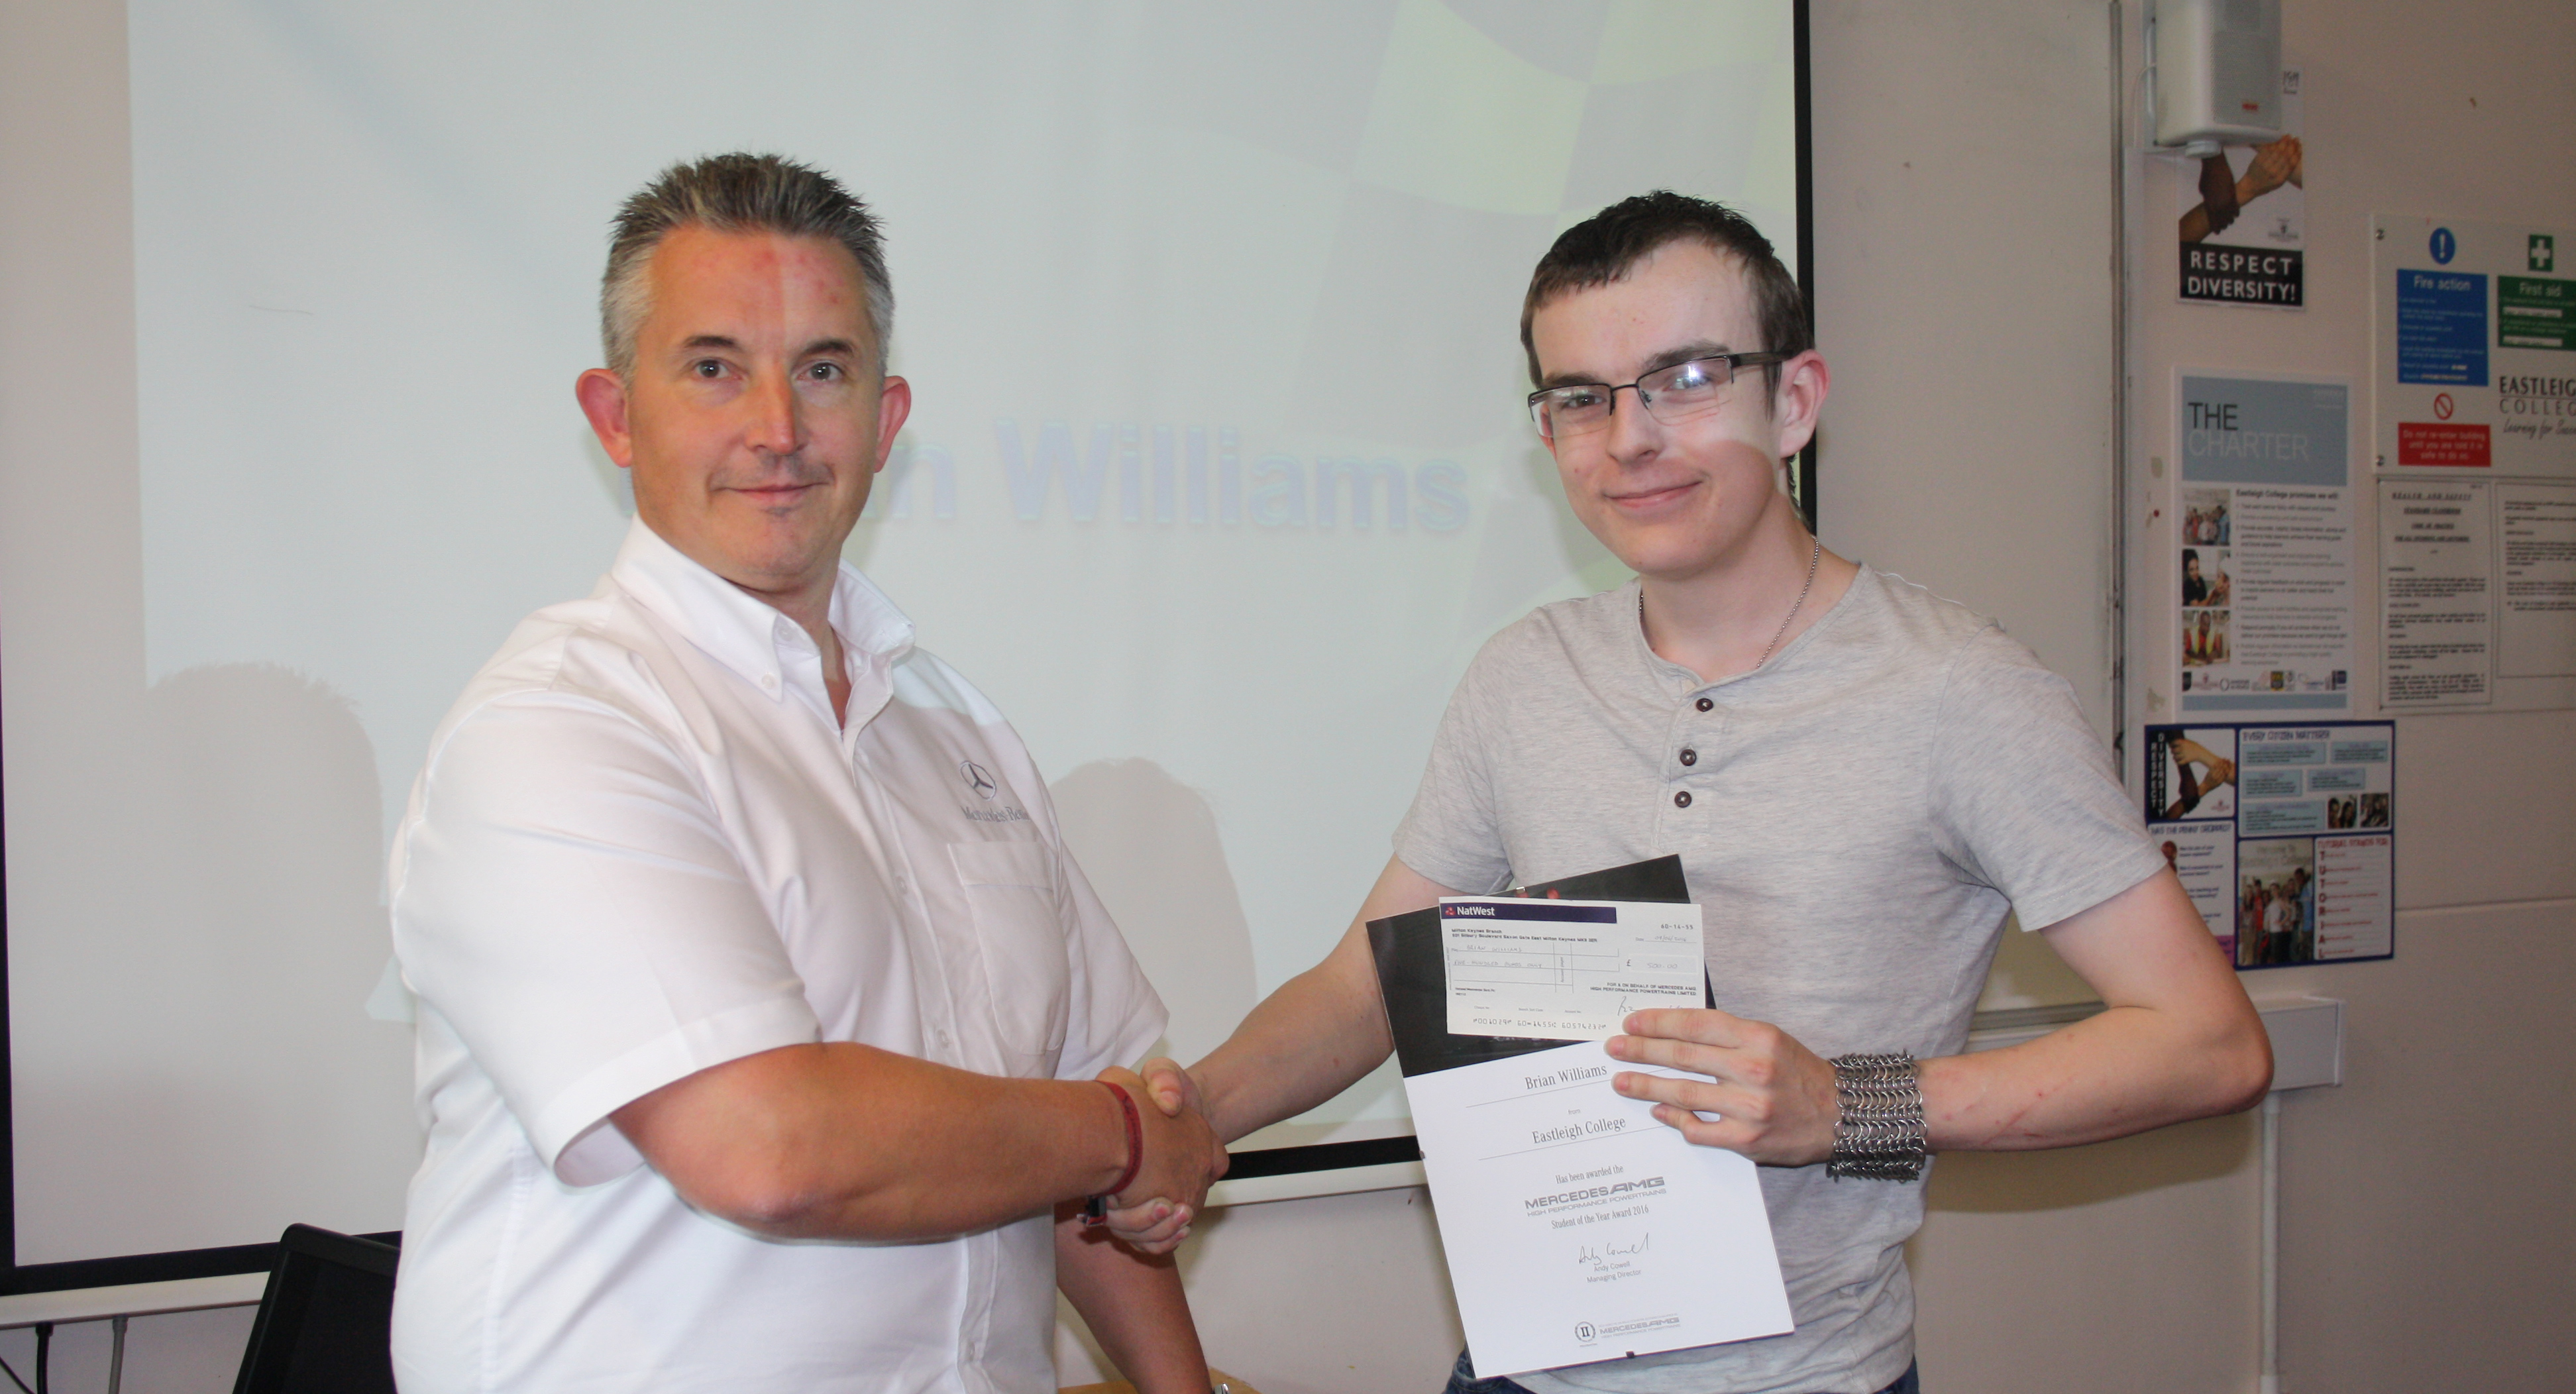 Engineering student in pole position for exciting career